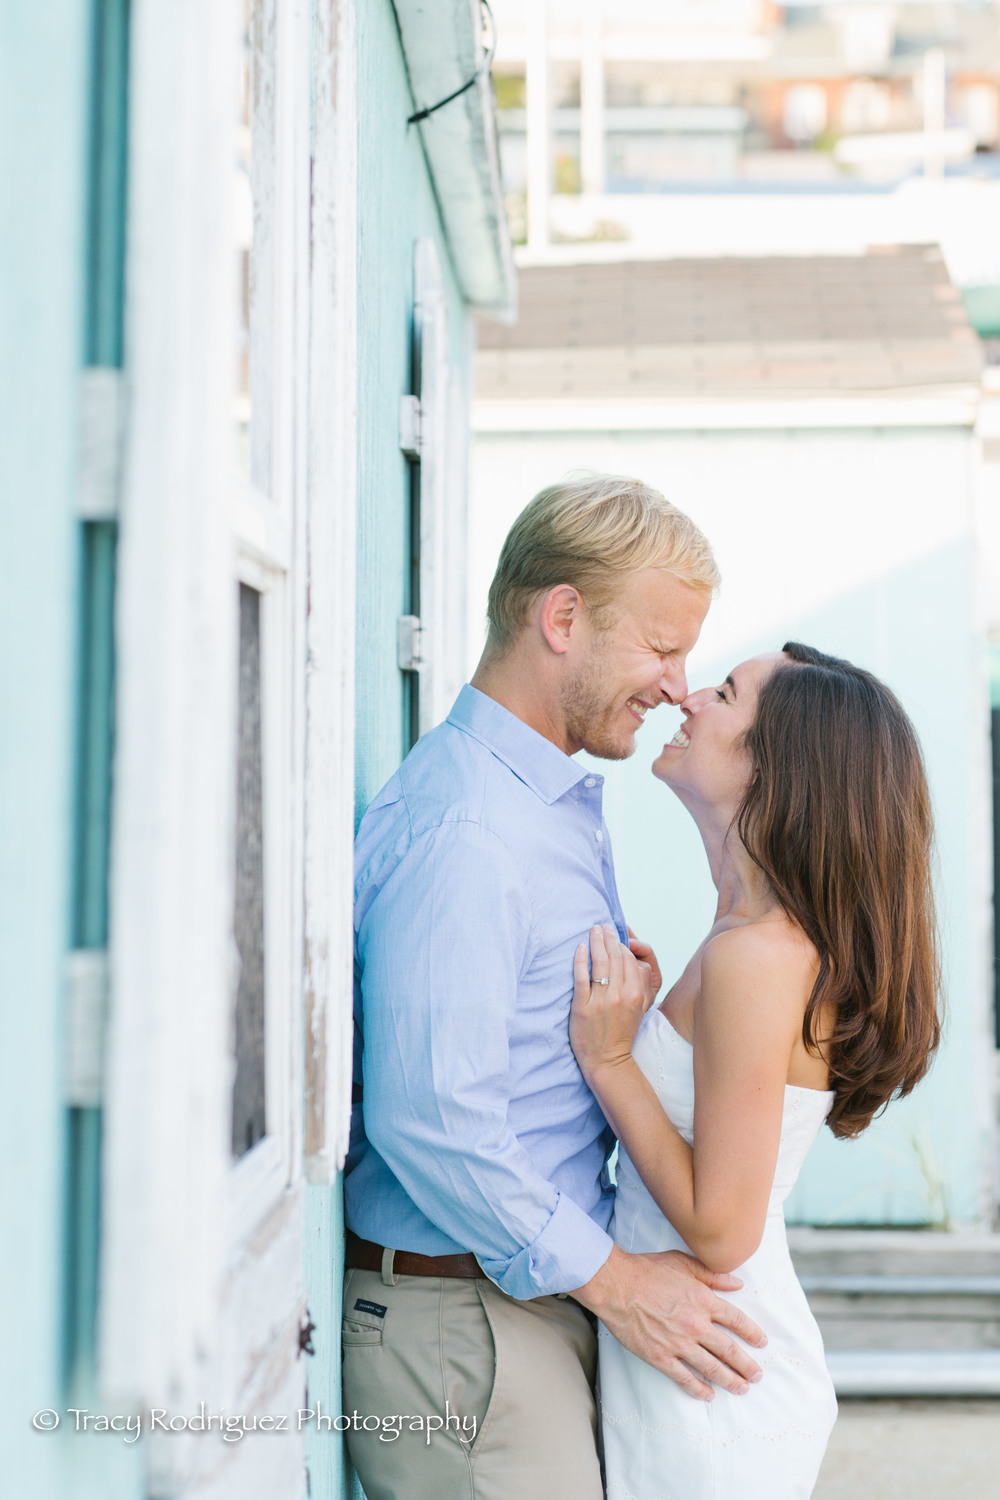 TracyRodriguezPhotography-Engagement-LowRes-4.jpg